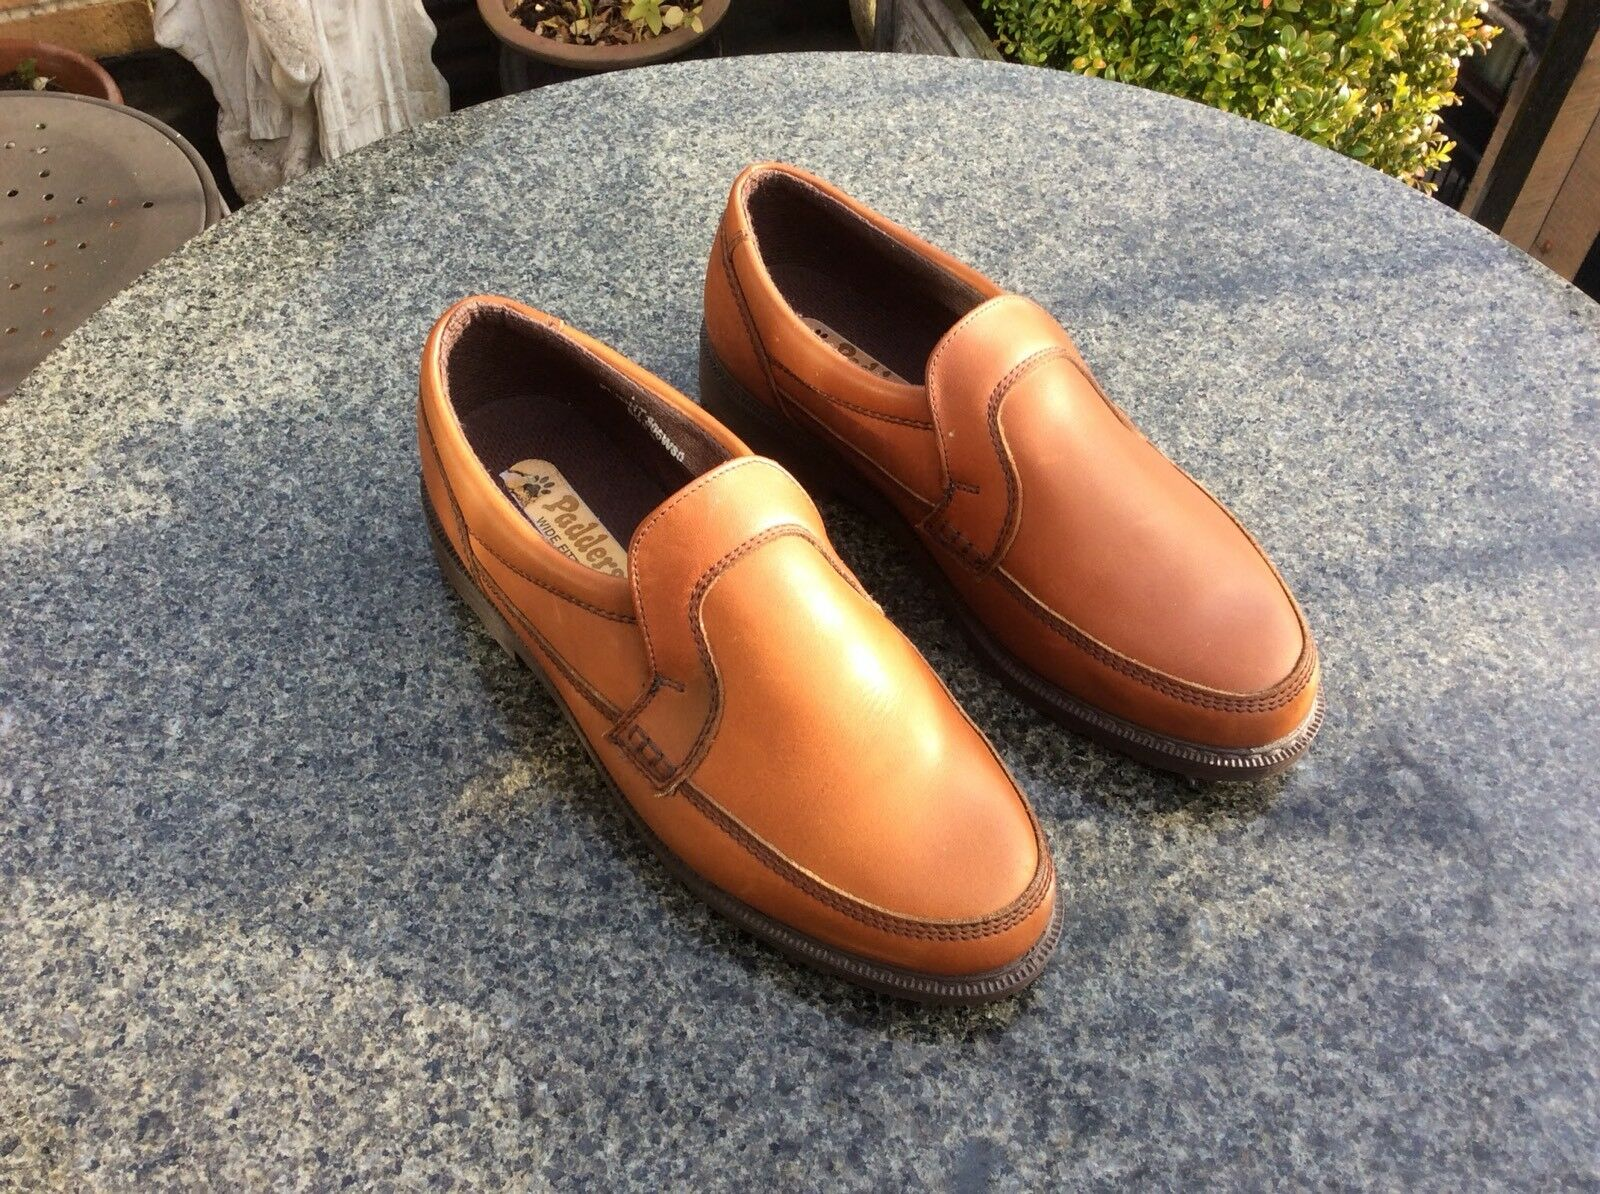 2c444b230f840e Padders, Tan/Marron en cuir, chaussures hommes, taille 8-wide 8-wide 8-wide  fit-NEUF (autres) | Durable Service 9a9a4e